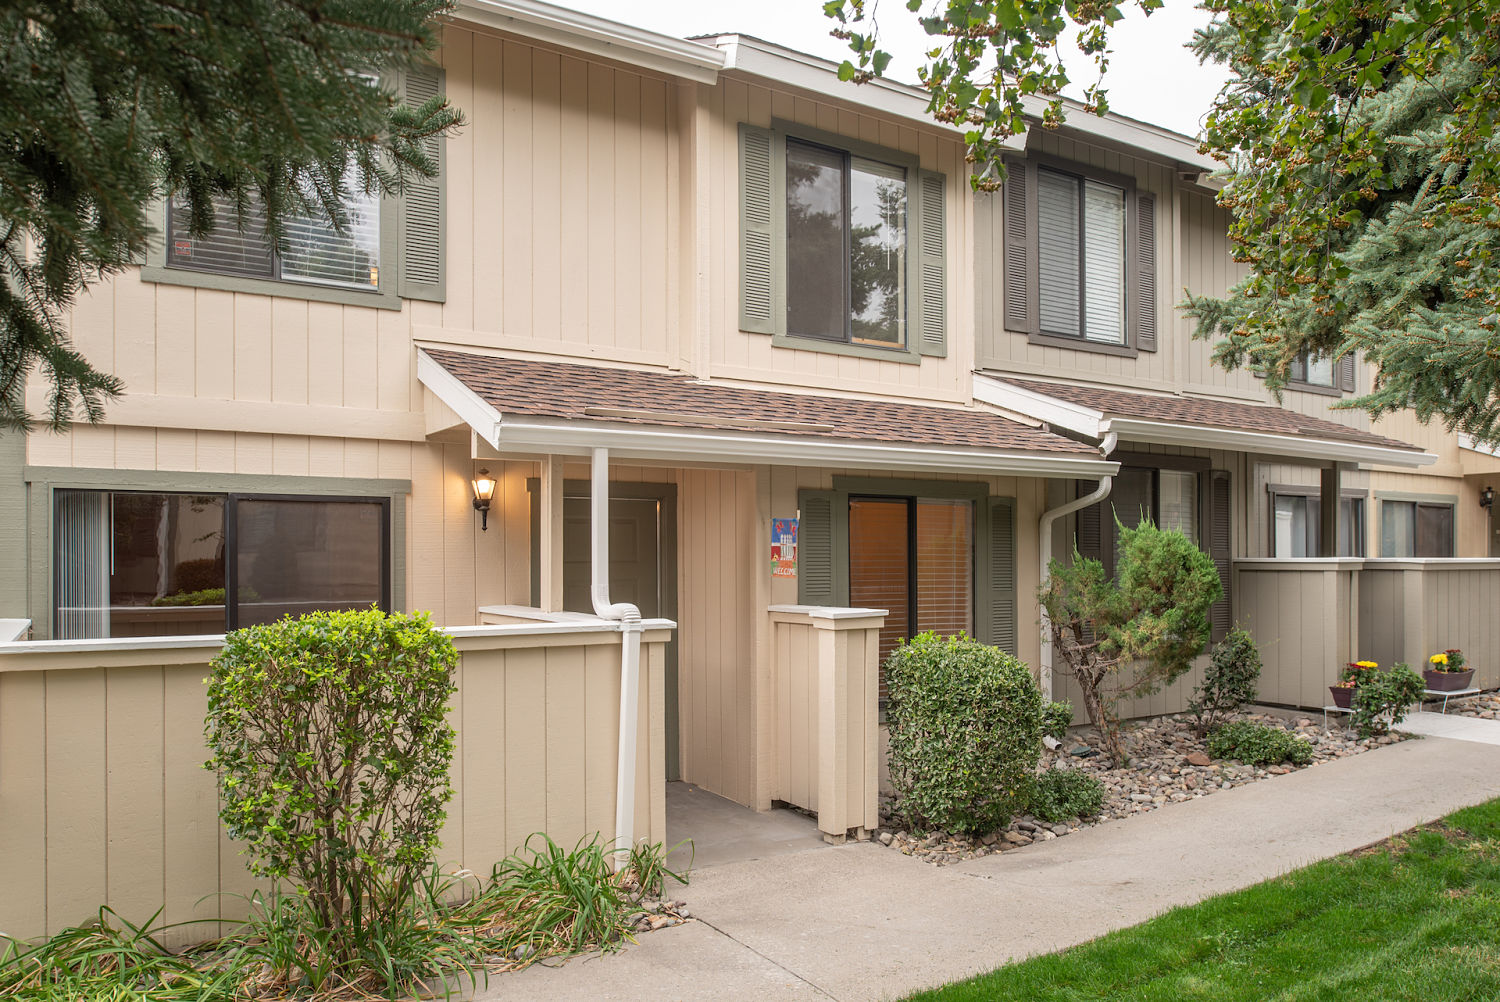 3230 Wedekind Road Unit 104 - sold december 4, 2018 for $195,000